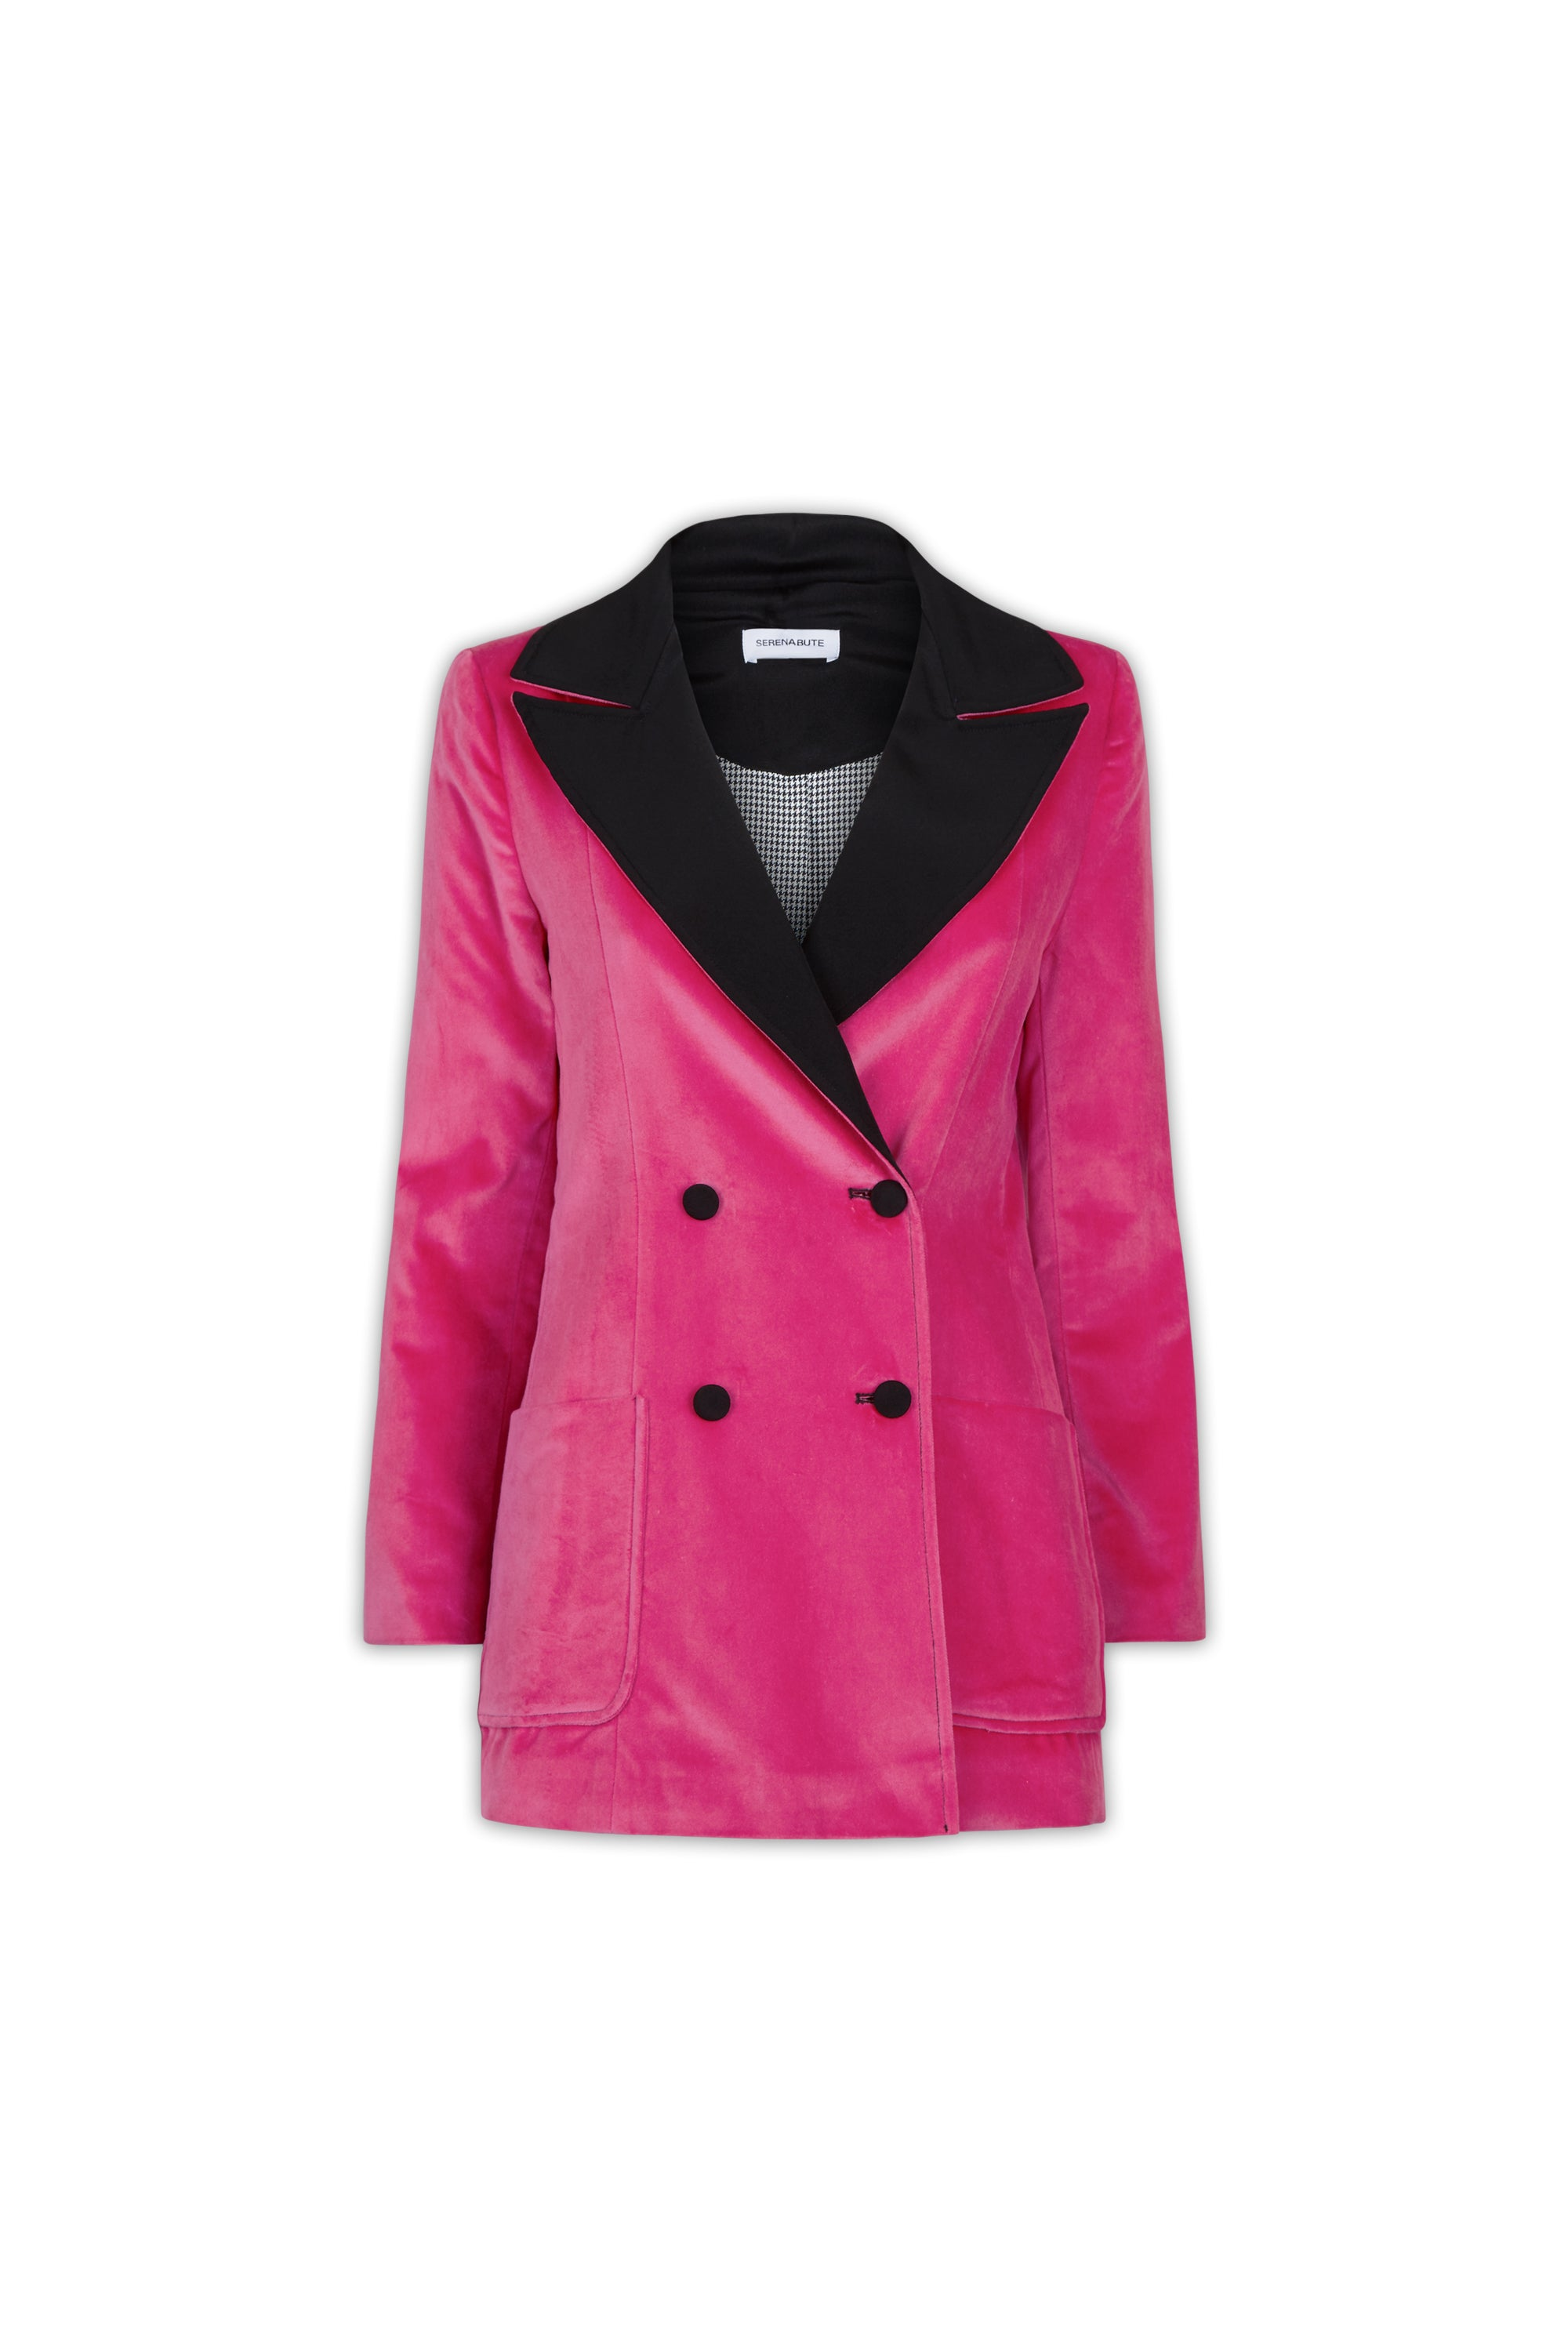 The Double Breasted Blazer - Cerise Pink Velvet